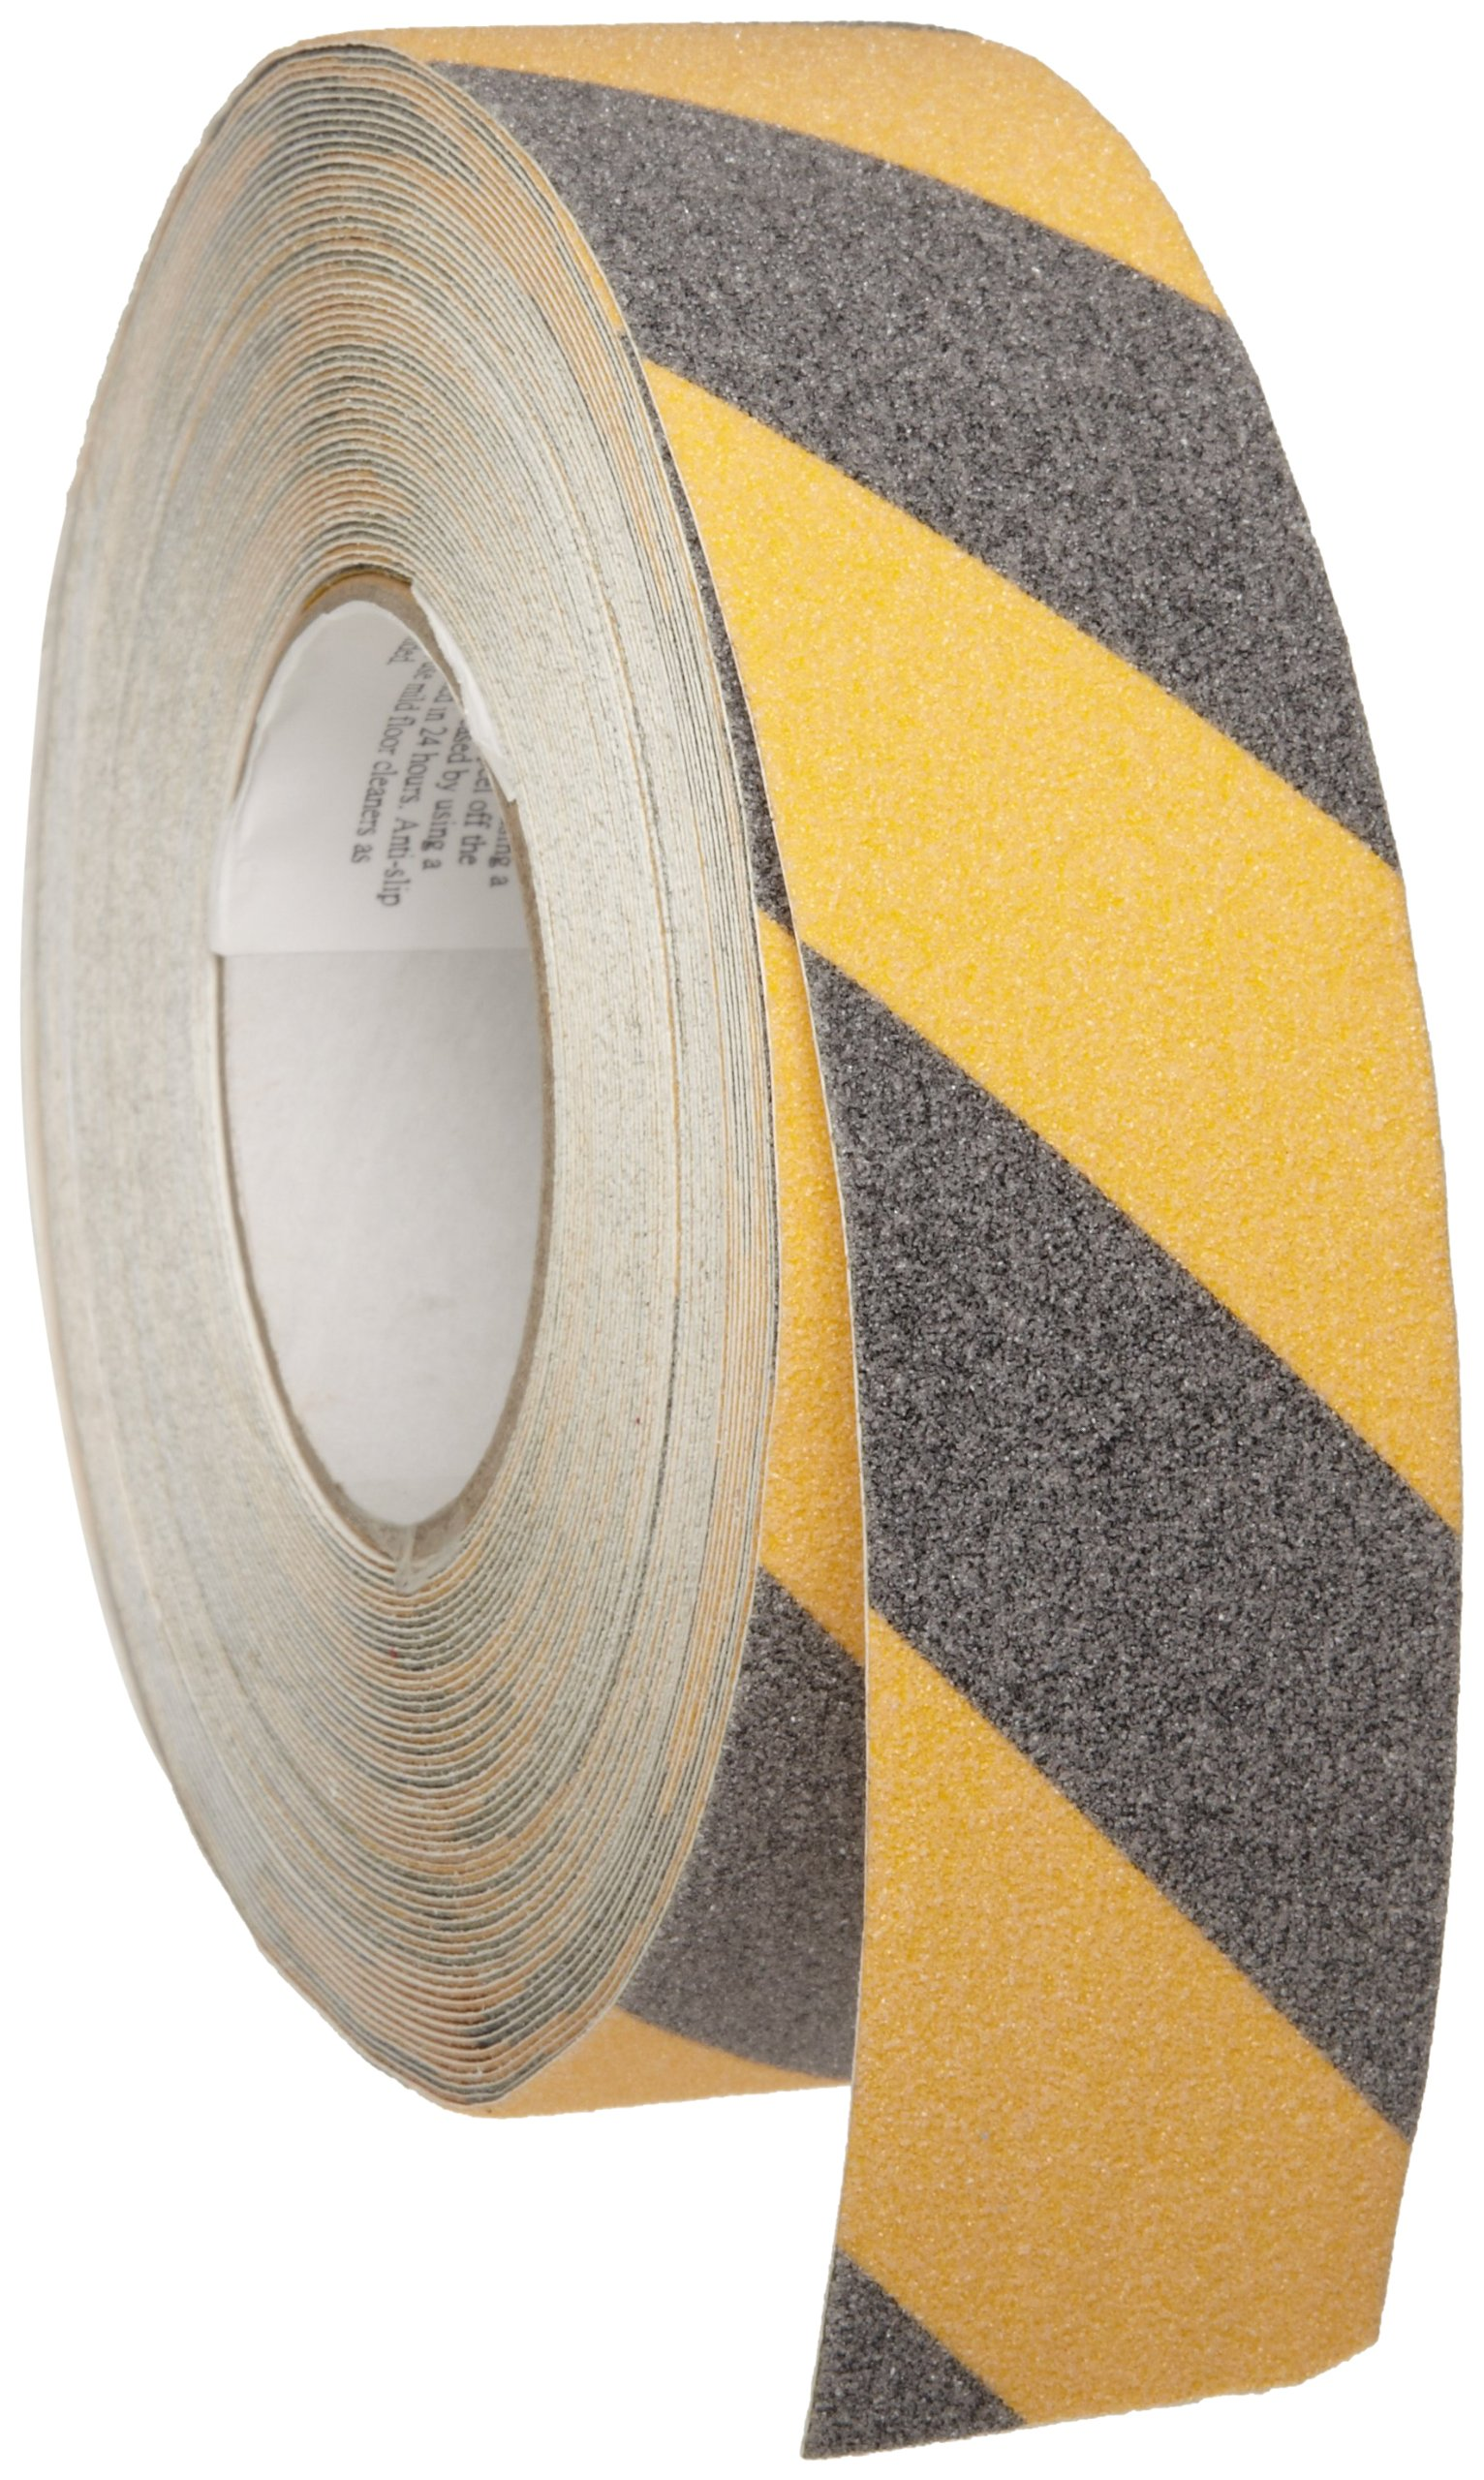 Brady 60' Length, 2'' Width, B-916 Grit-Coated Polyester Tape, Striped Special Black And Yellow Color Anti-Skid Tape